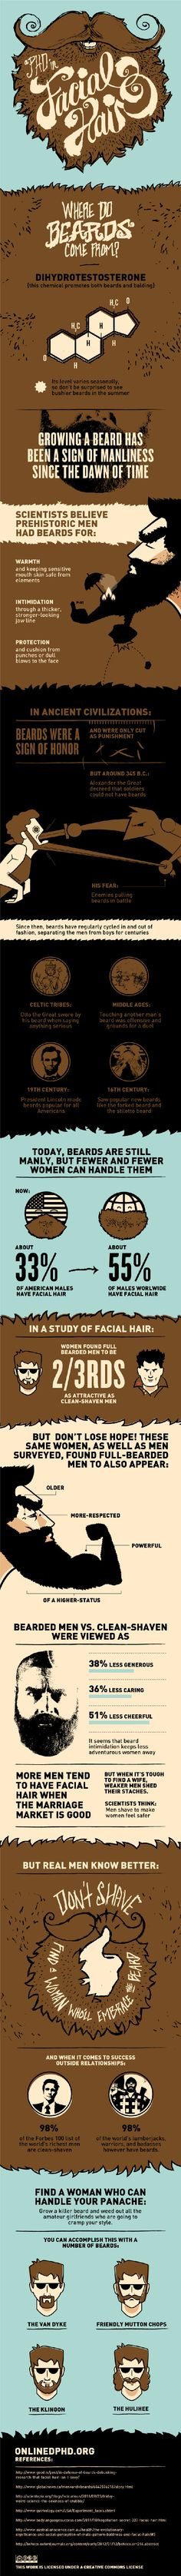 Everything You Ever Wanted To Know About Beards :-P [#Beardographic] [#Infographic]